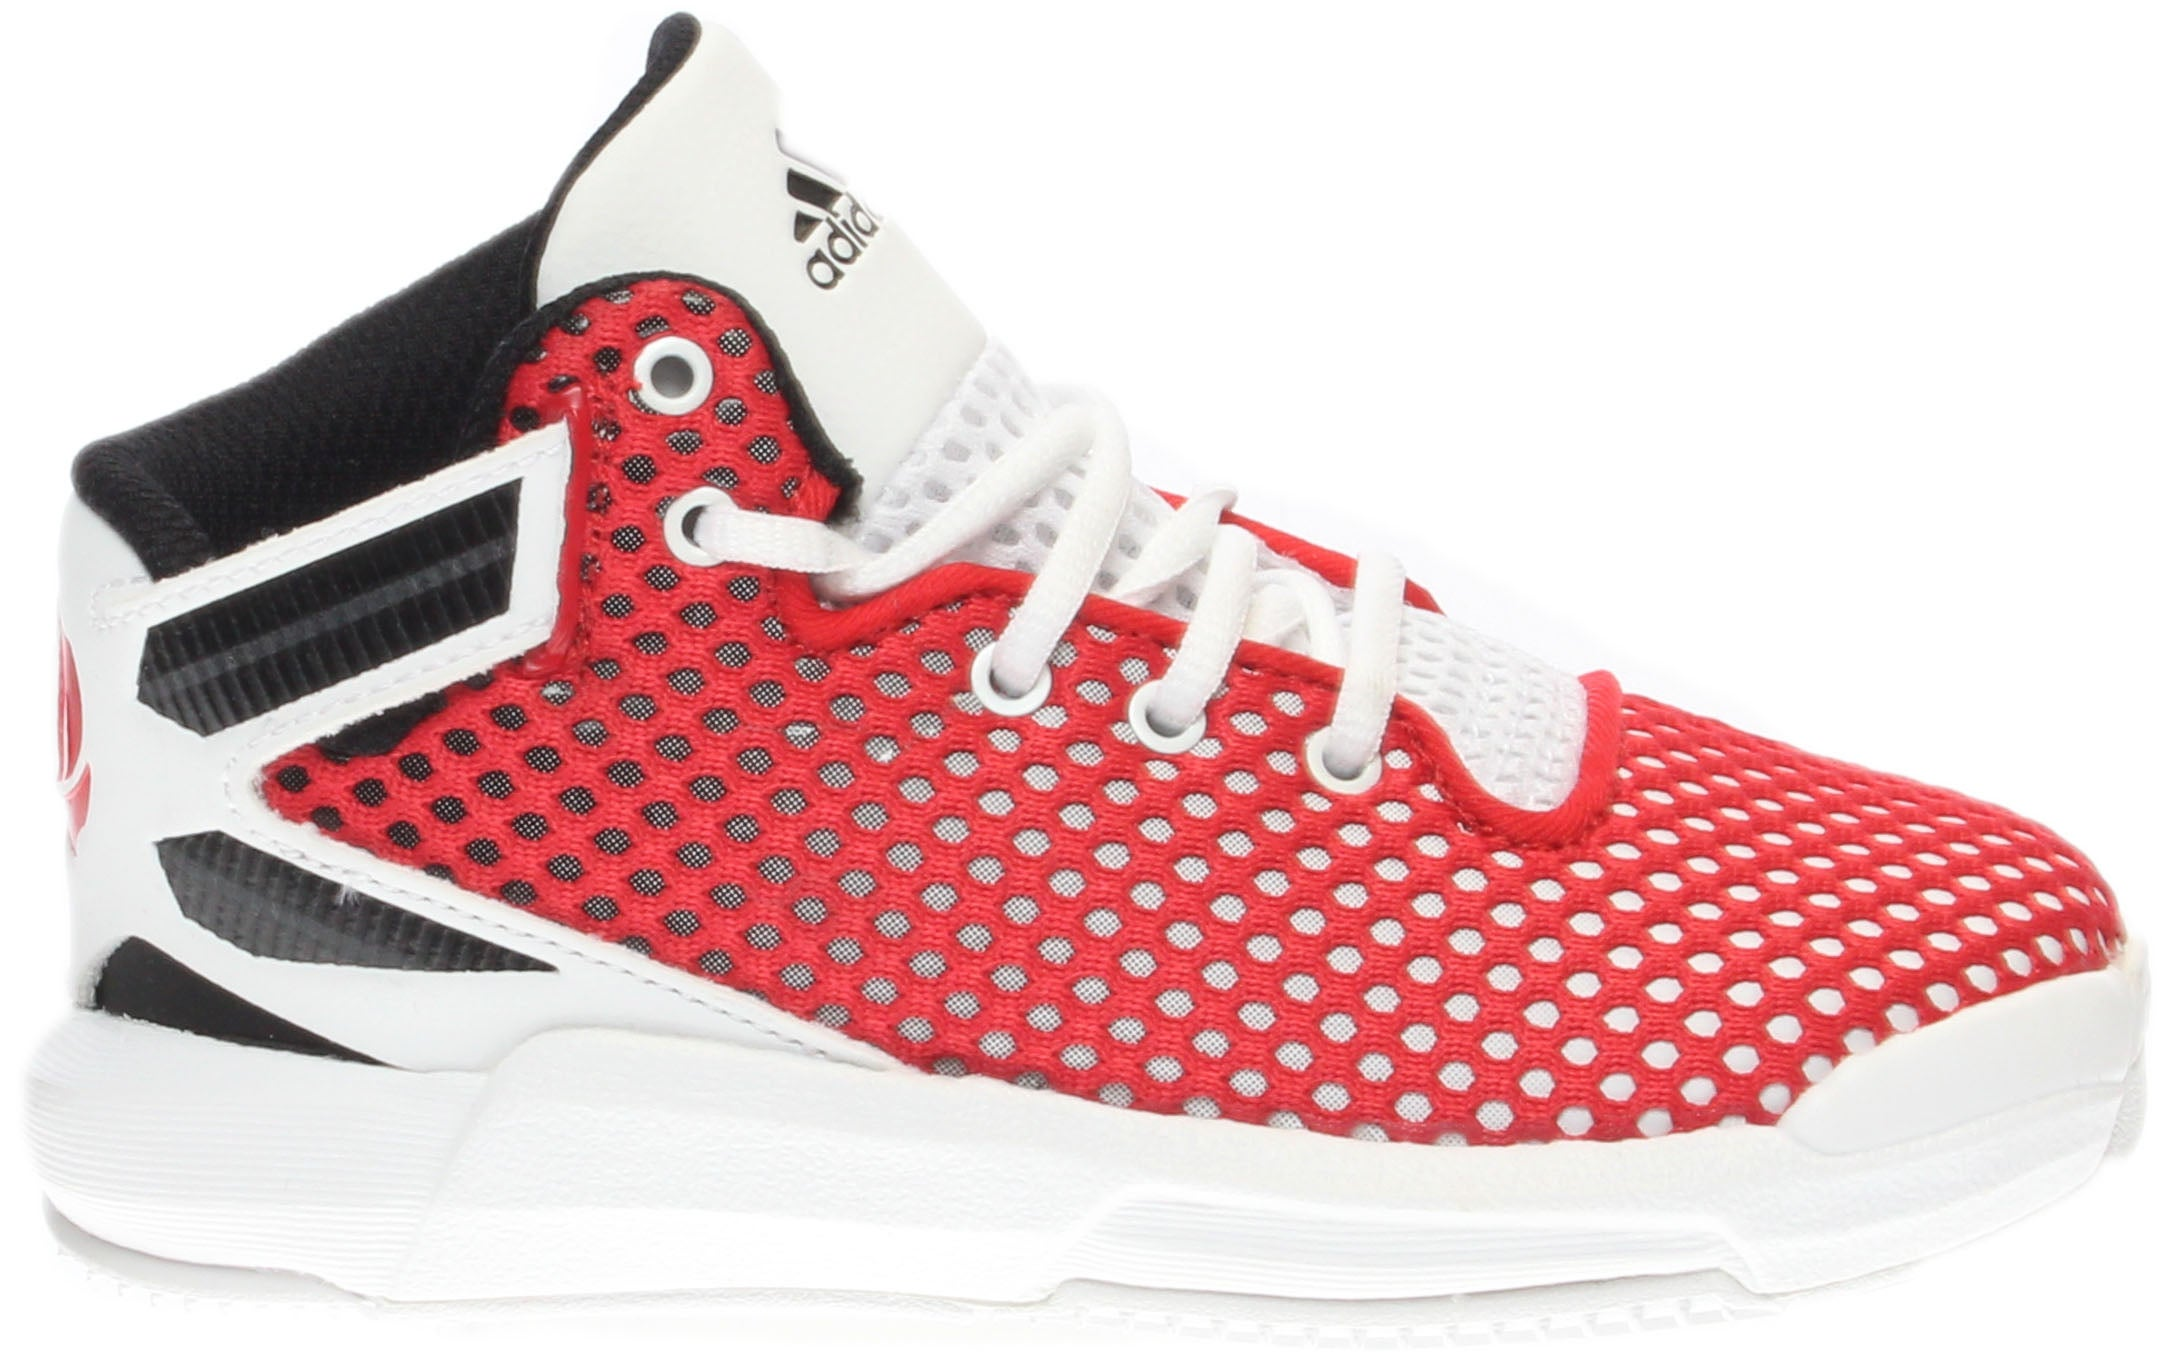 844968cc1c48b8 Details about adidas D Rose 6 Sneakers - Red - Boys